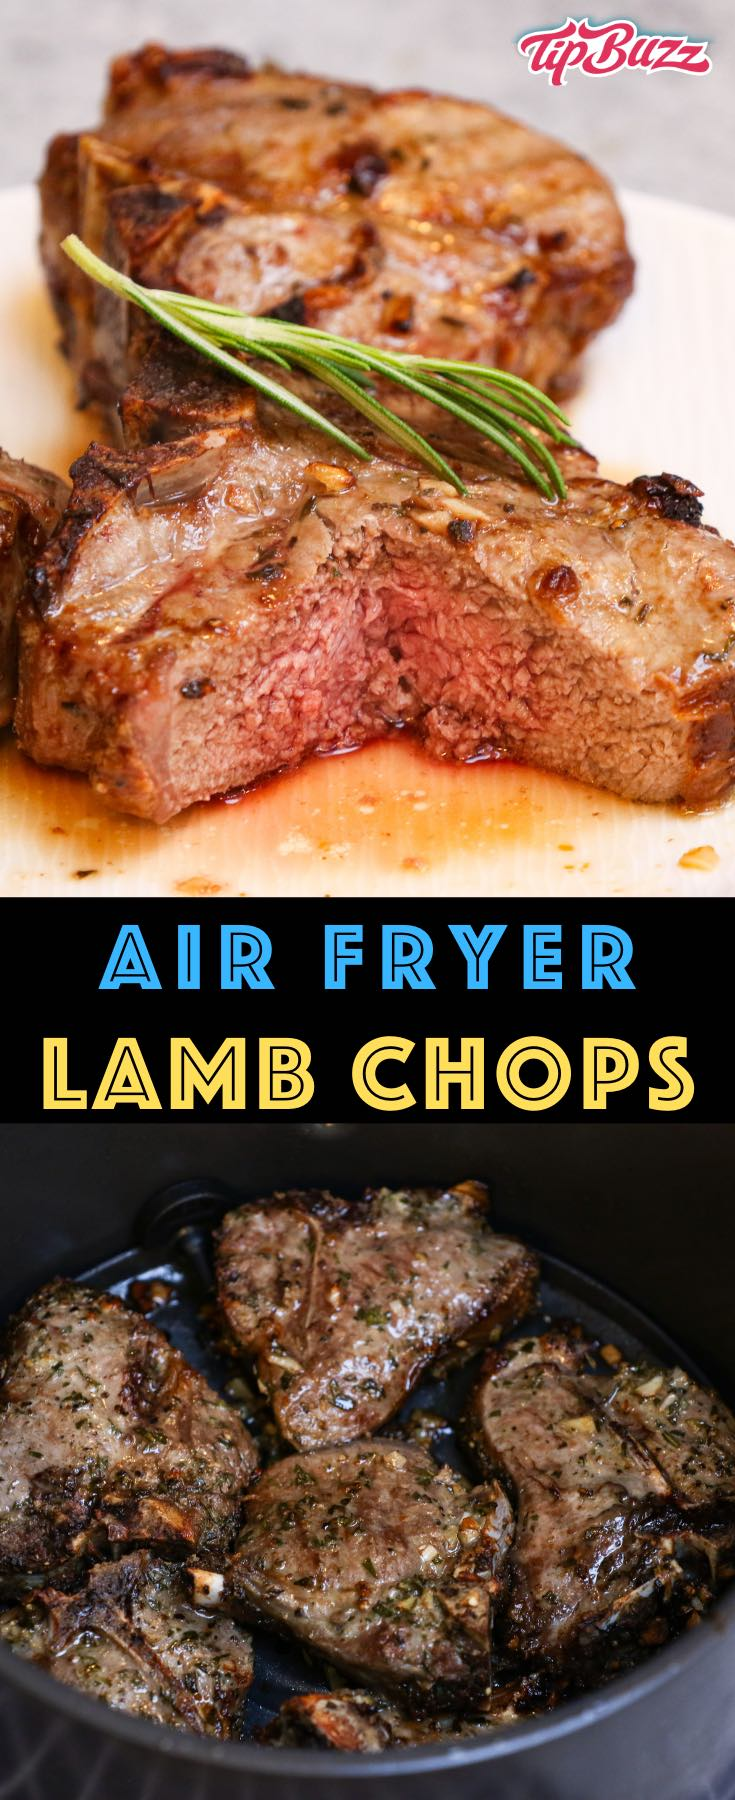 These Air Fryer Lamb Chops are juicy and flavorful with a crispy crust. This easy recipe is the fastest way to cook lamb chops, cutlets or a rack of lamb. They marinate briefly in garlic, rosemary and olive oil before cooking for just 10-12 minutes at 400°F! #AirFryerLambChops